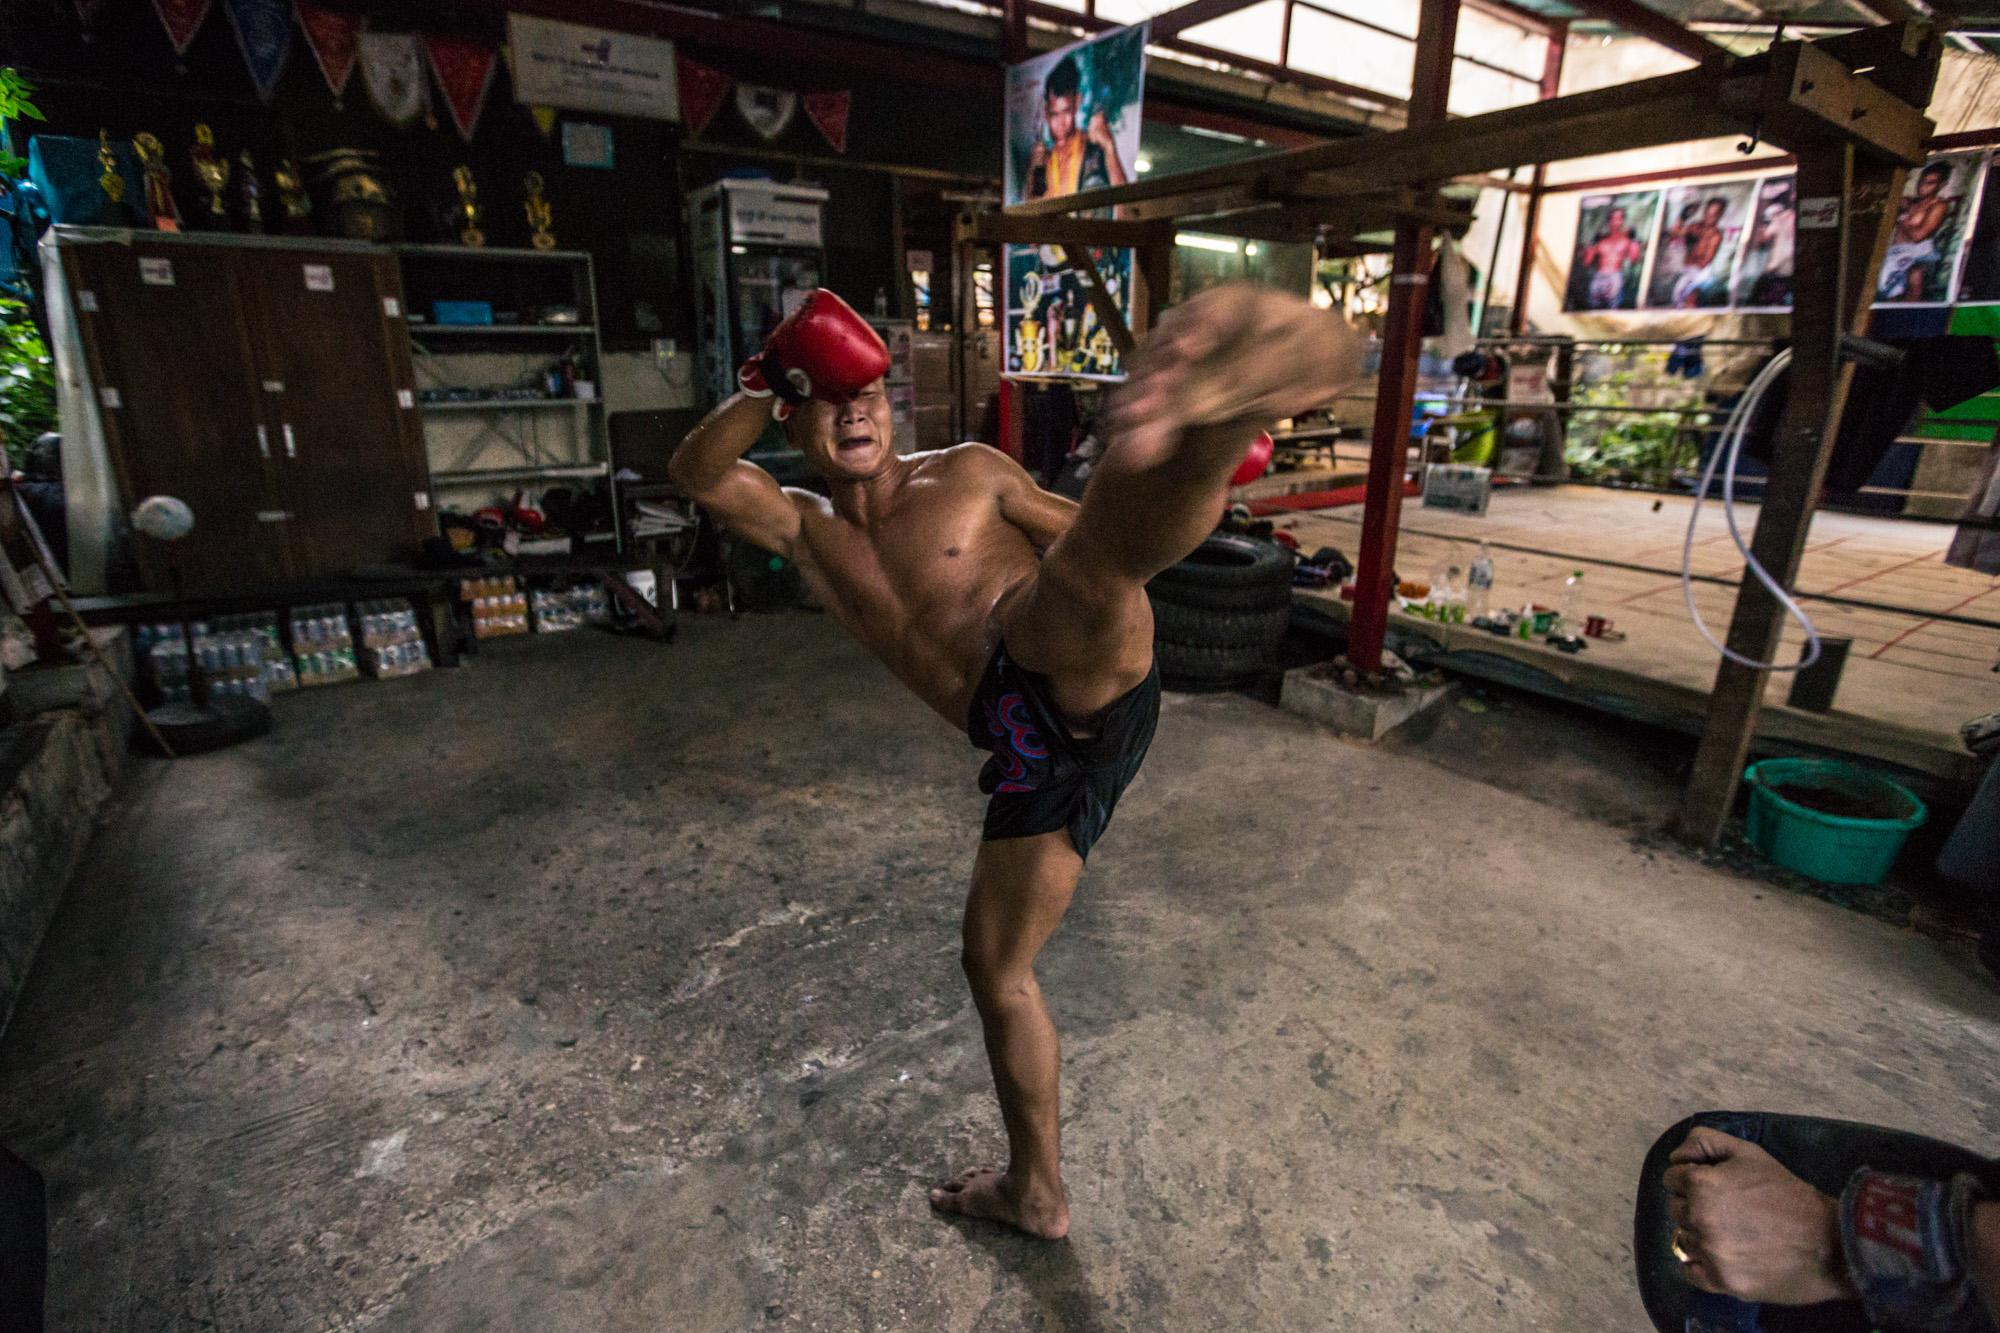 Shan Ko, a professional let wei (Burmese boxing) fighter, trains at Thut Ti boxing gym in Yangon, Myanmar.